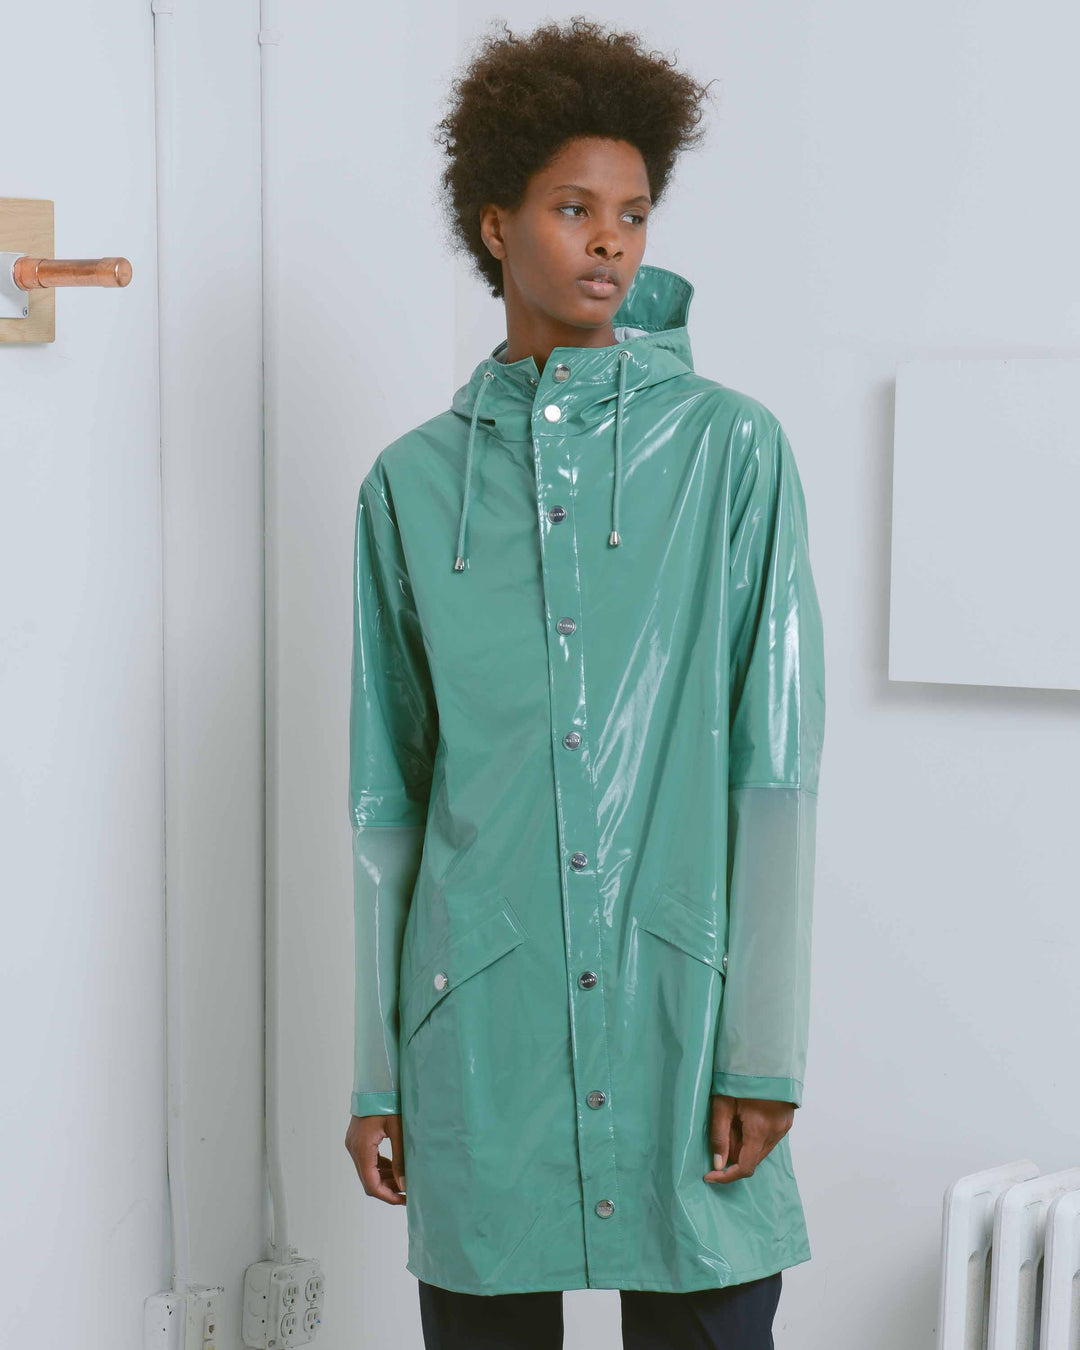 Green LTD Long Jacket